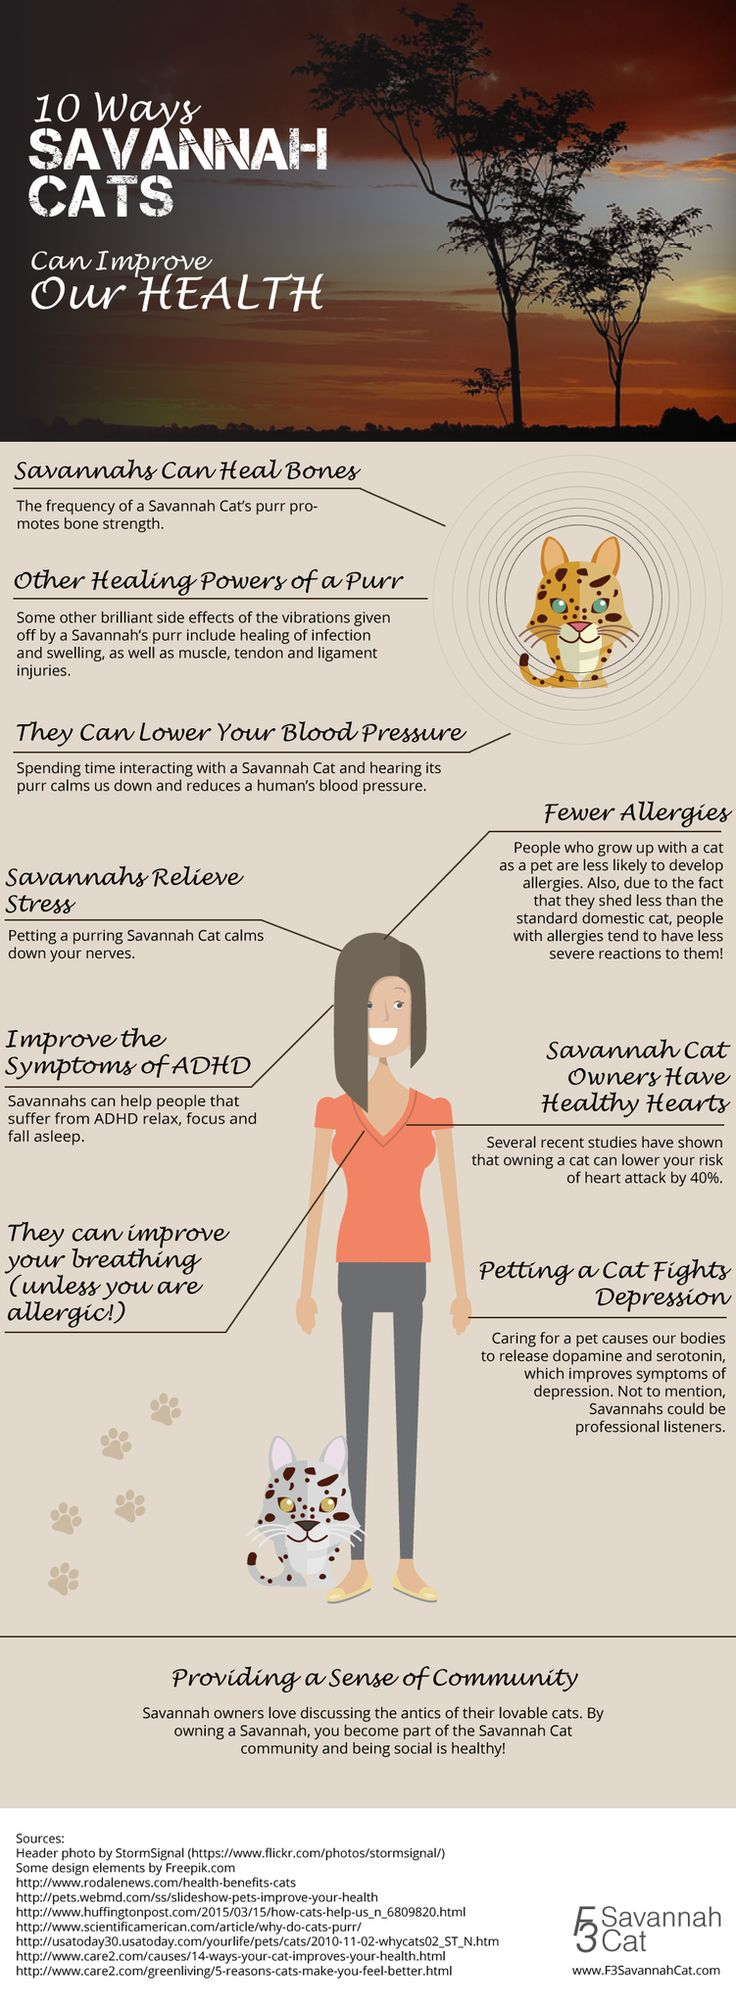 Health Benefits of owning a Savannah Cat | F3 Savannah Cat (@f3savannahcat) | Twitter